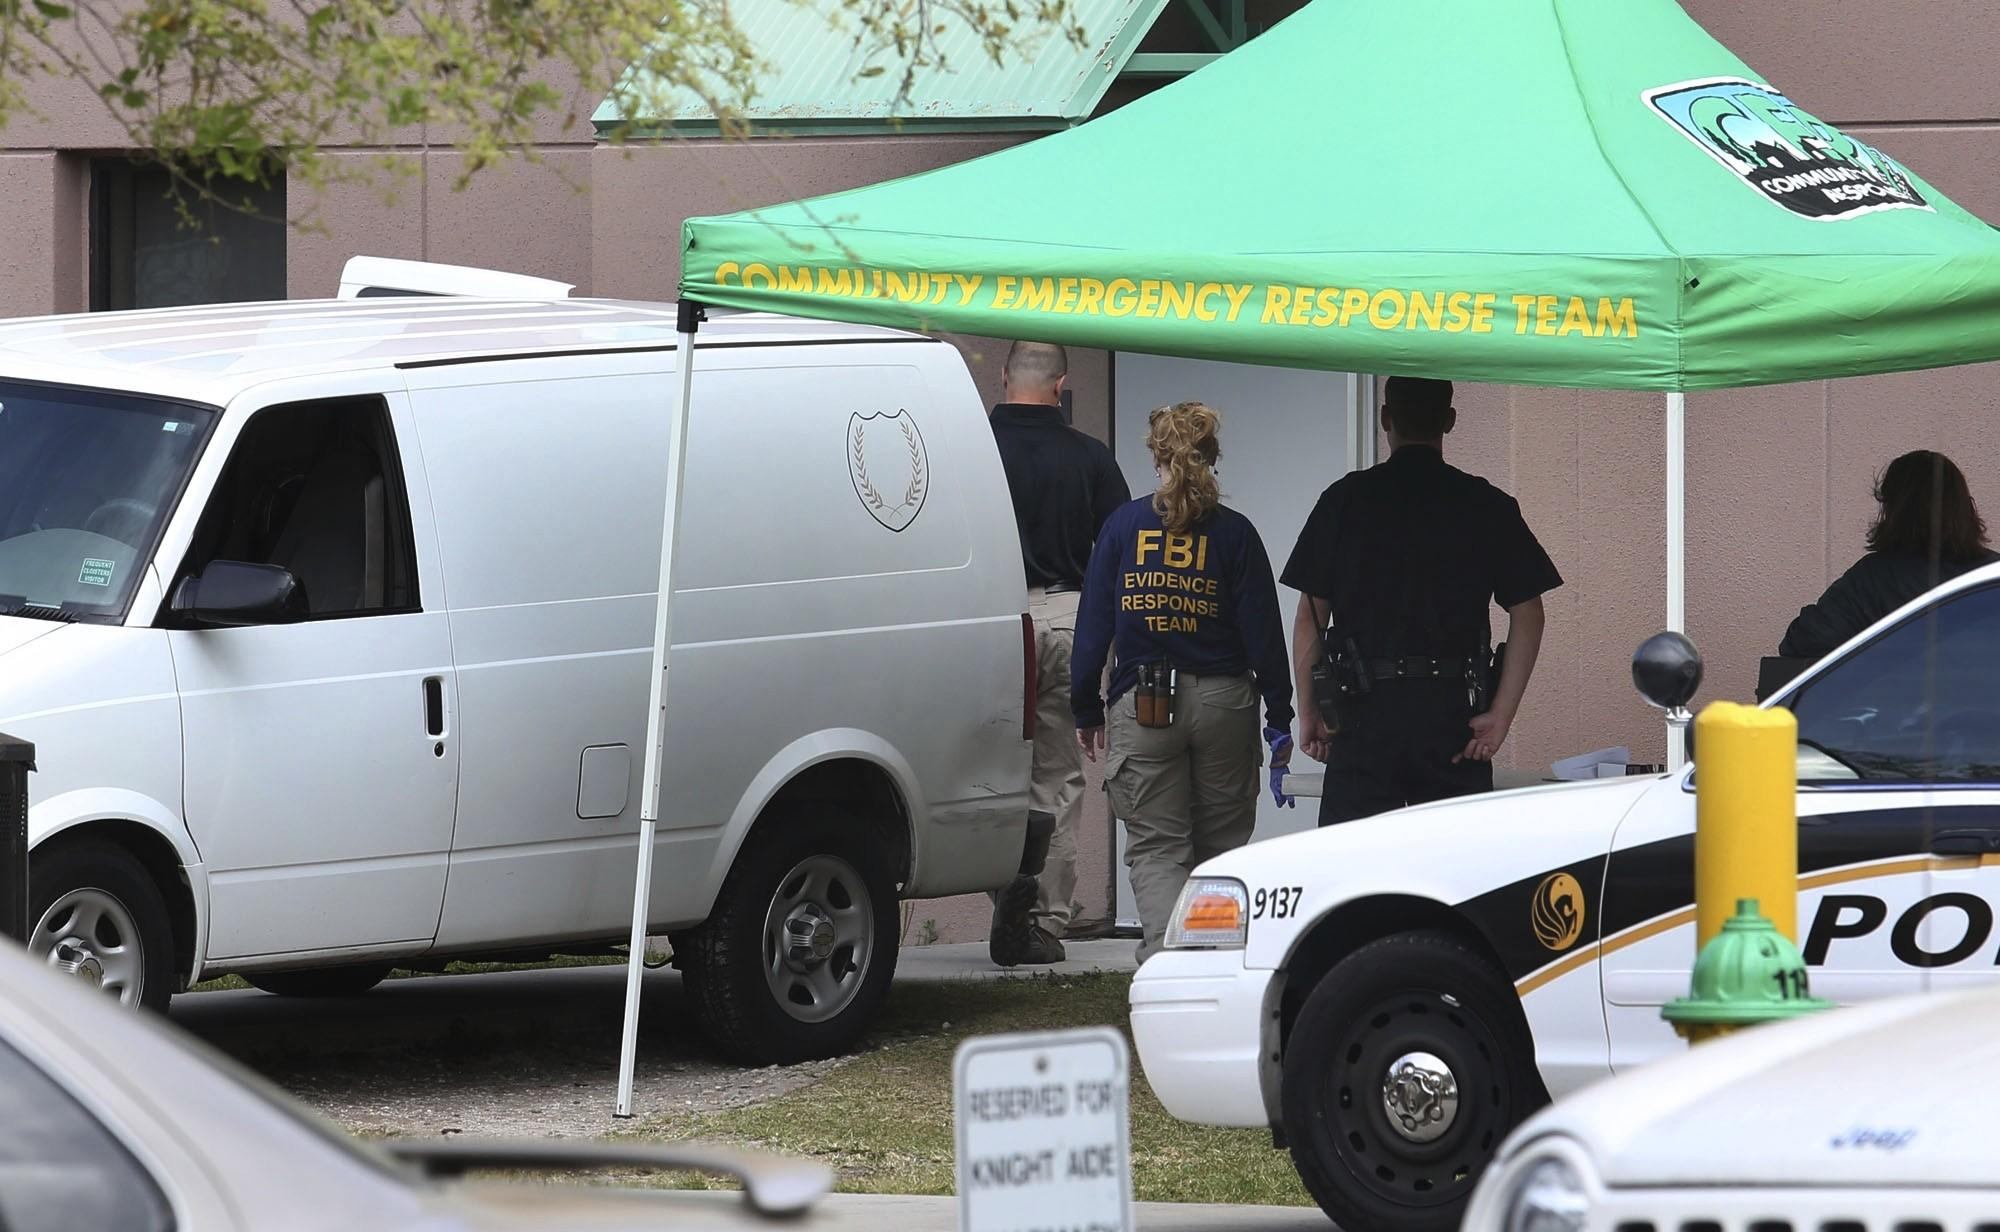 The medical examiner van is parked outside the dorm building as FBi evidence response team arrives Monday, March 18, 2013 to UCF after a student was found dead on campus. Explosives and guns were found in a dorm building,background, where she was evacuated from little after midnight. (Red Huber / Orlando Sentinel)